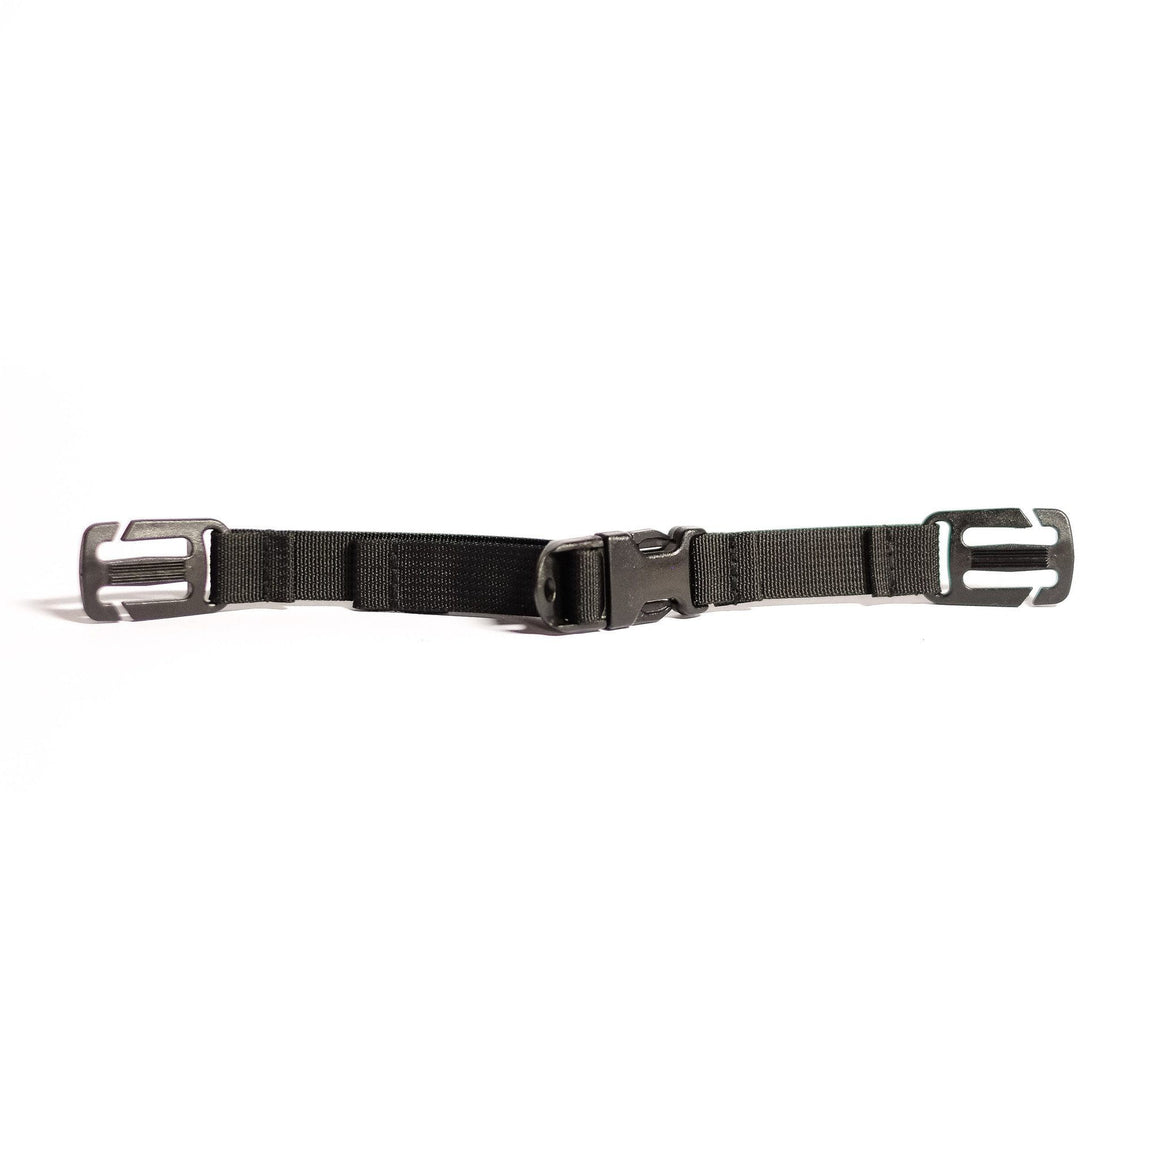 Sternum Strap - granolaproducts.com